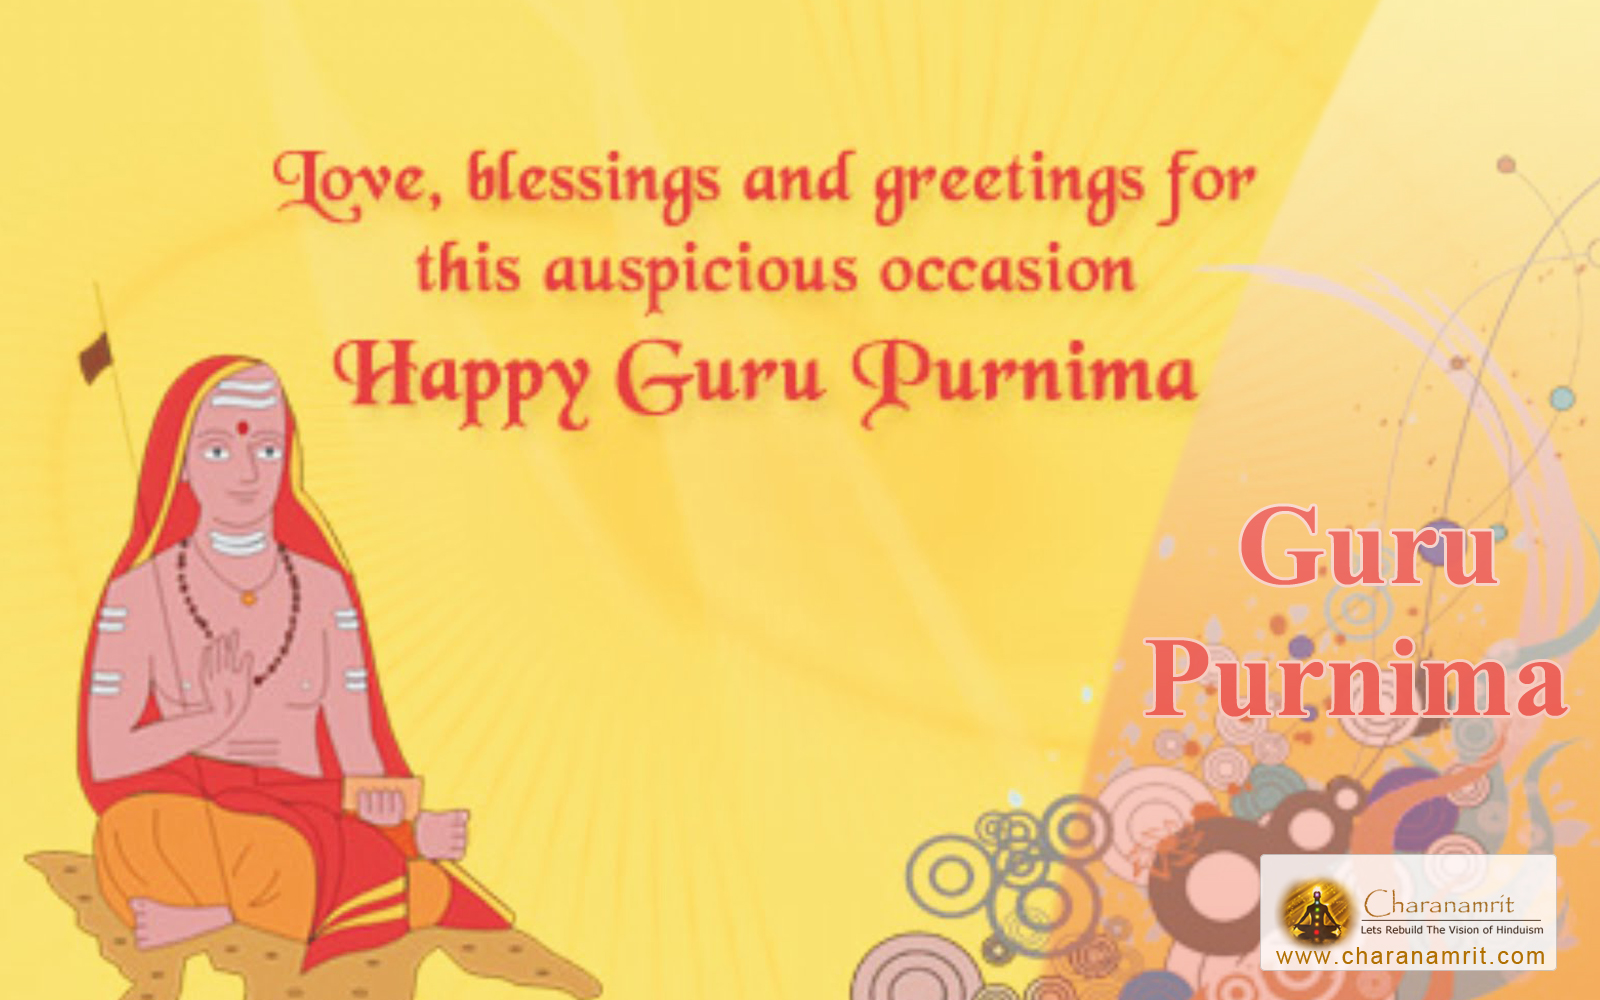 Guru Purnima 2018 Image for Whatsapp